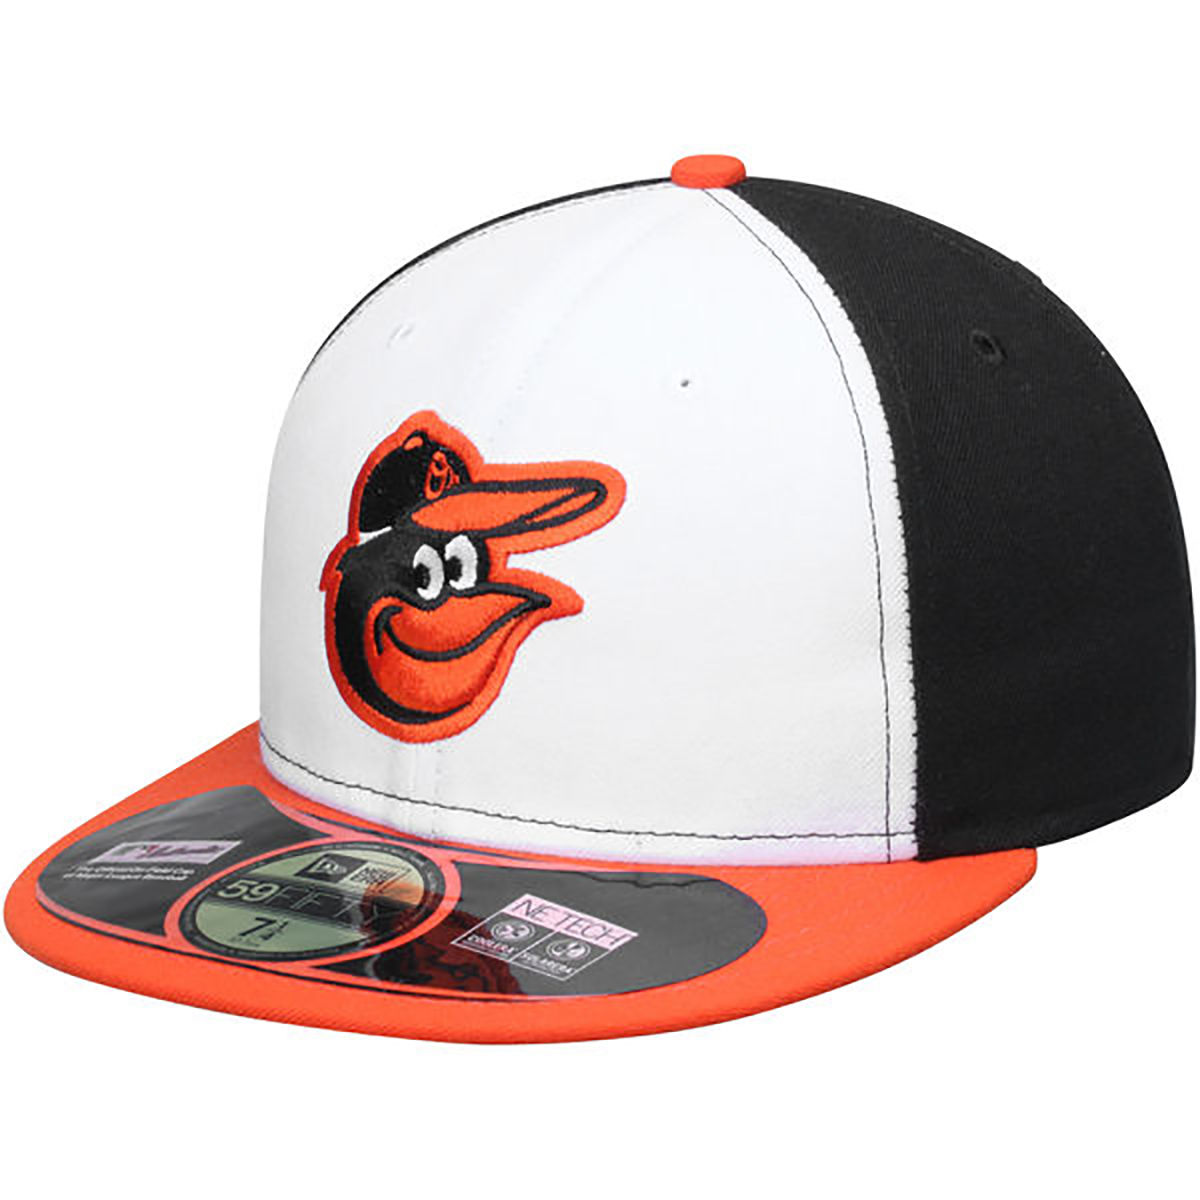 Baltimore Orioles Adult New Era 59FIFTY Fitted Hat-Home